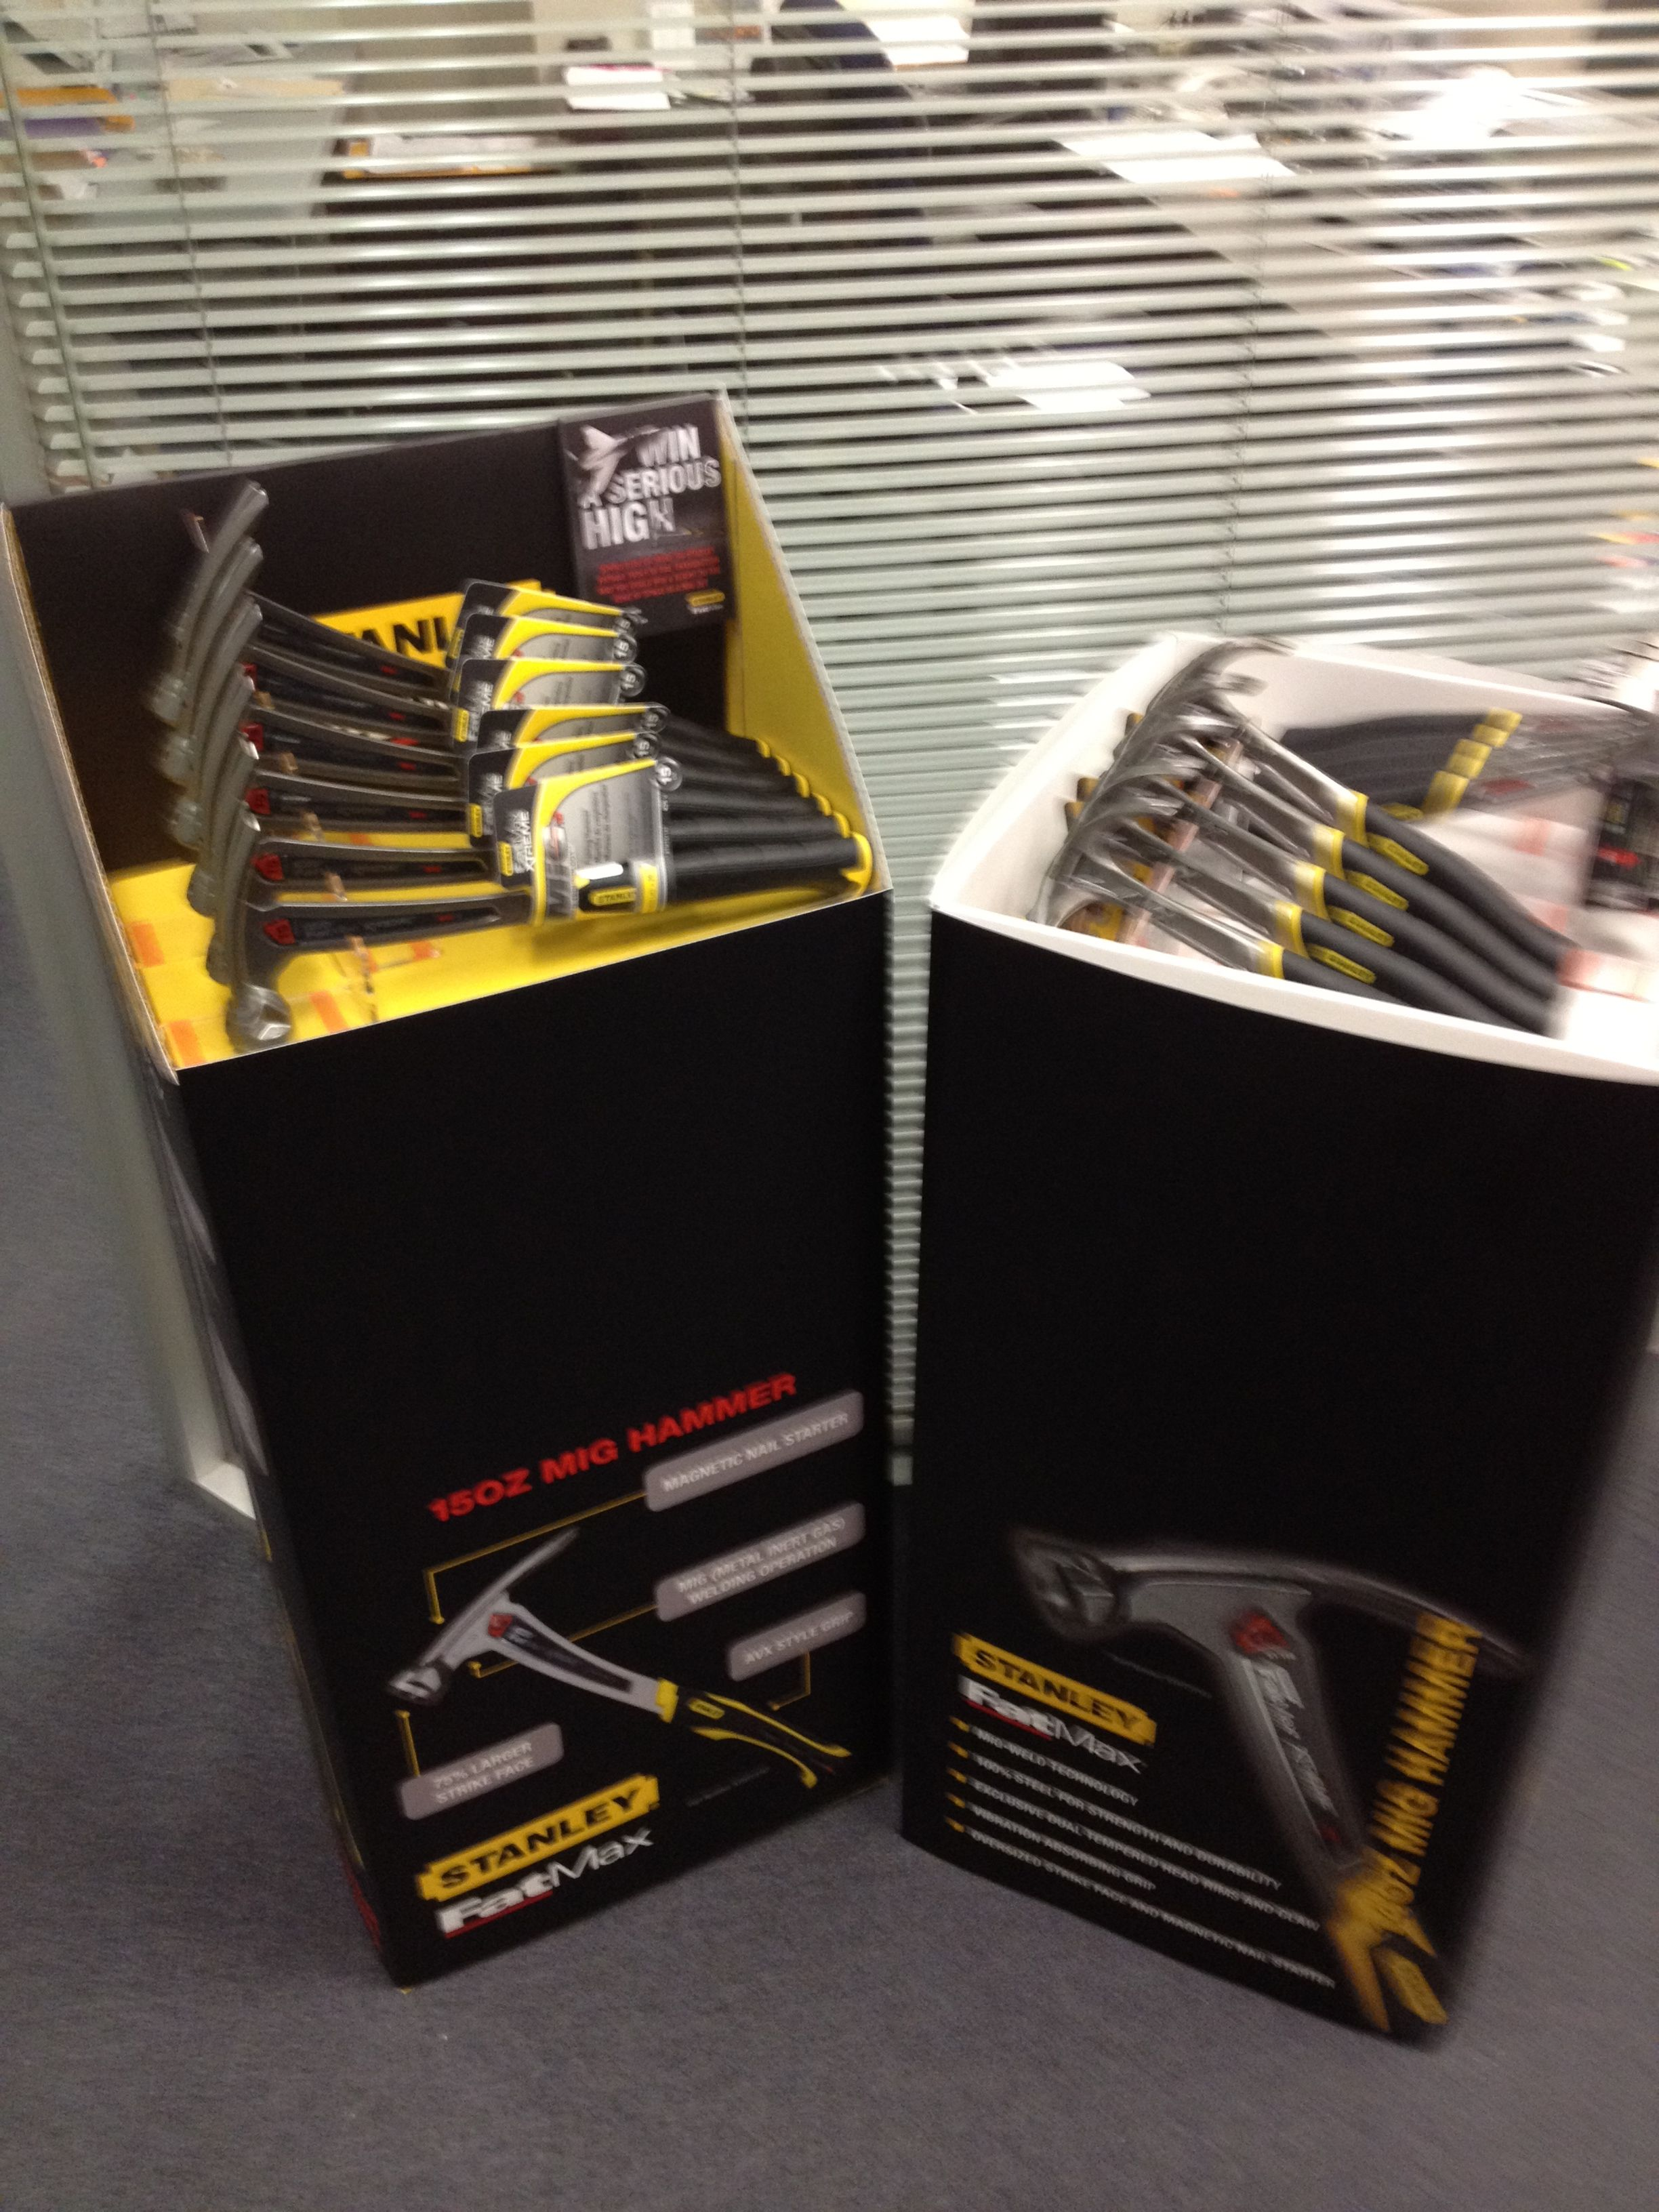 Just a some of the POS displays that we've designed for the guys at Stanley. These ended up in Bunnings.